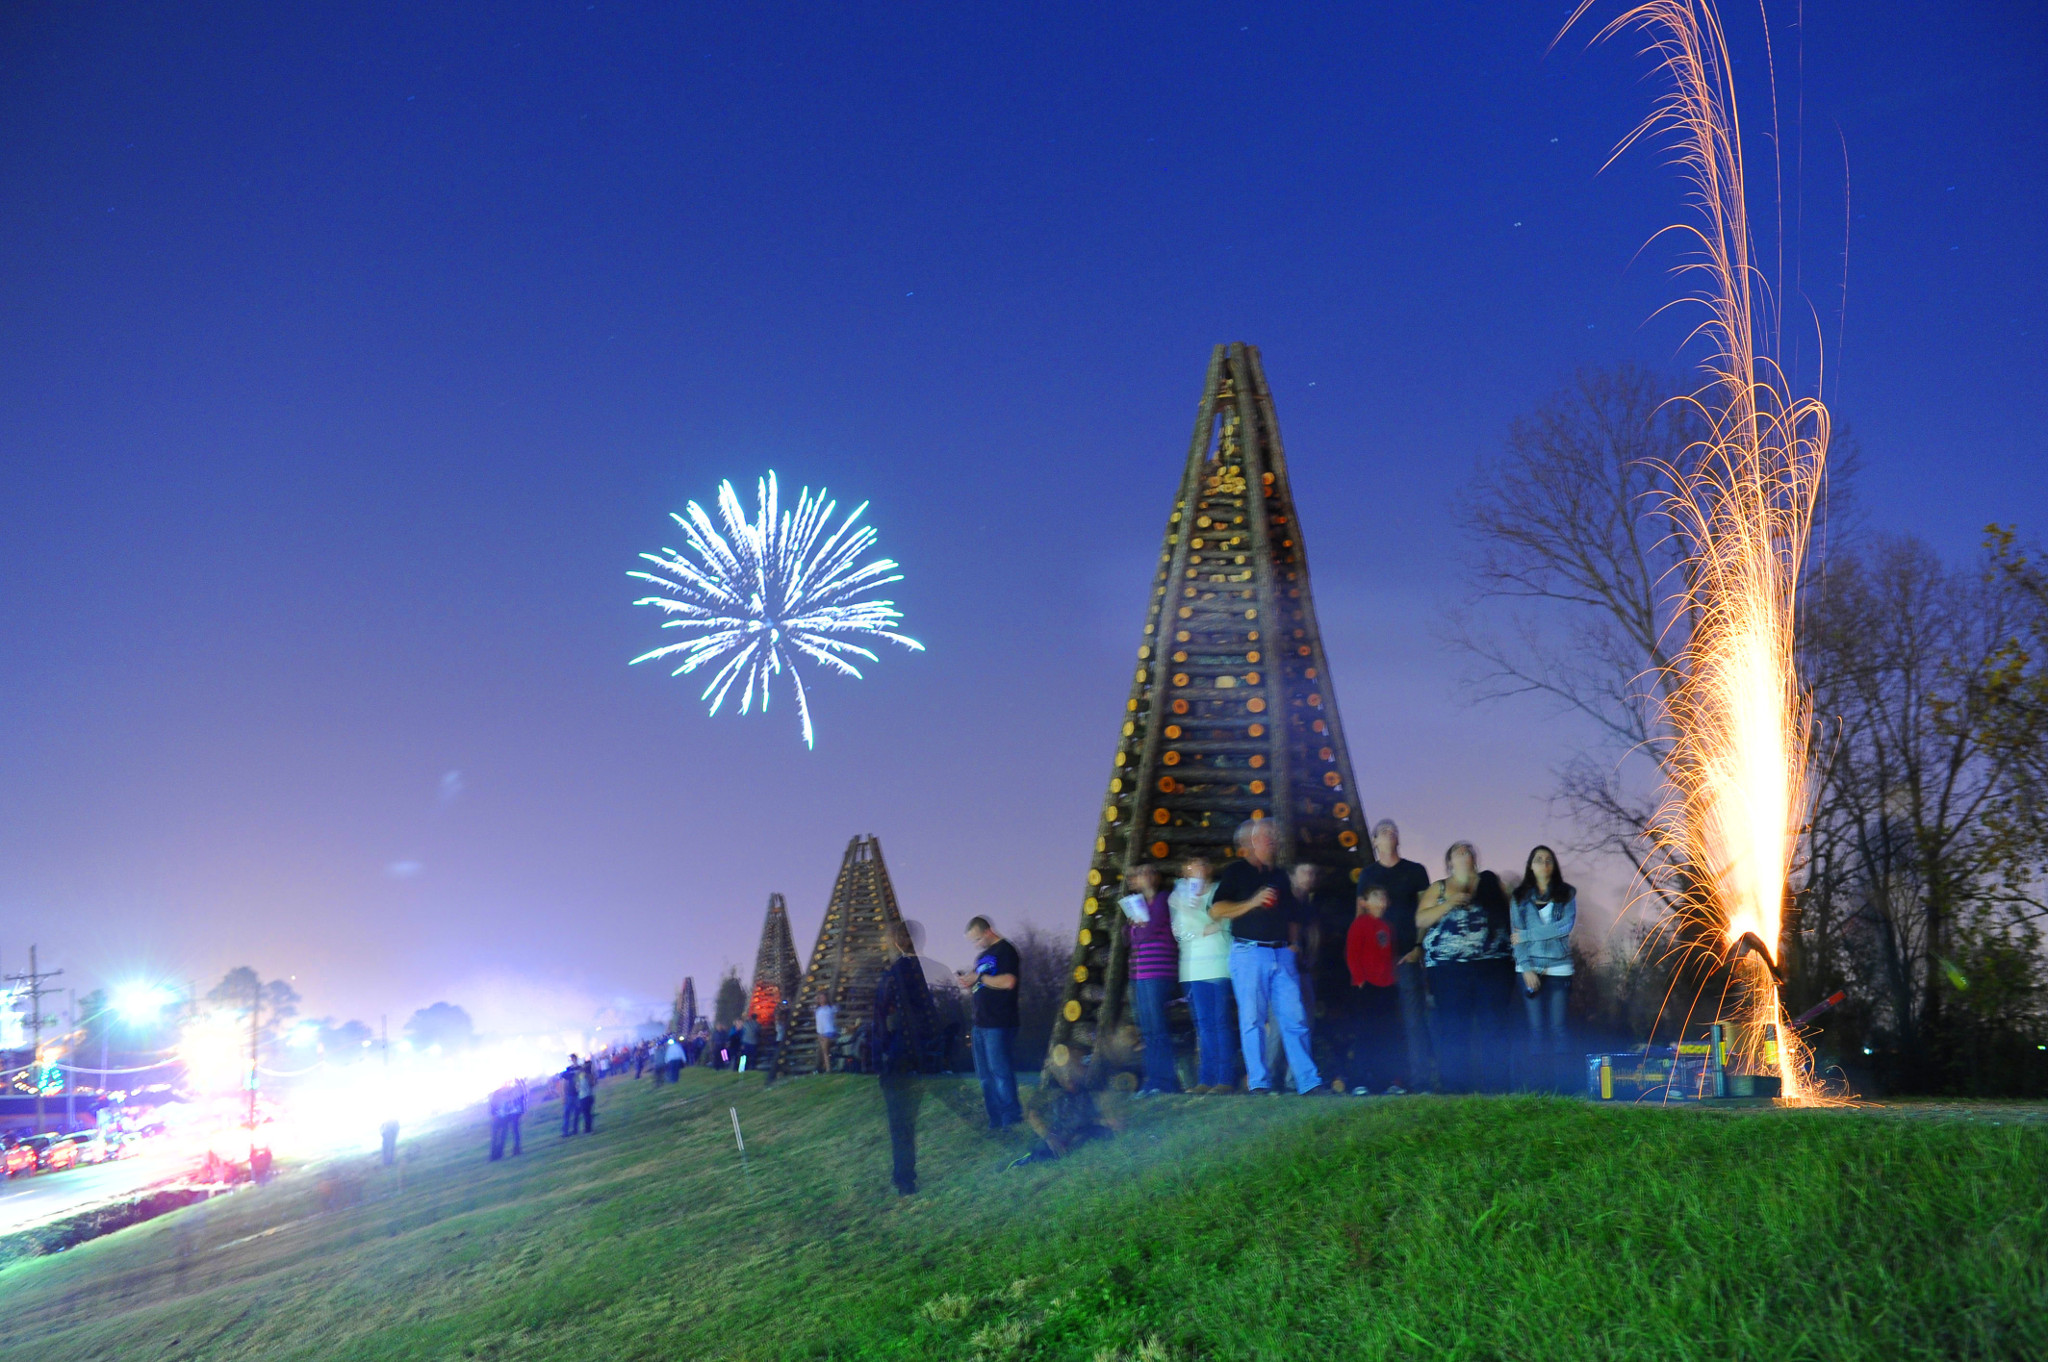 Bonfires (and fireworks) on the levees are a holiday tradition. (Photo: Cheryl Gerber)